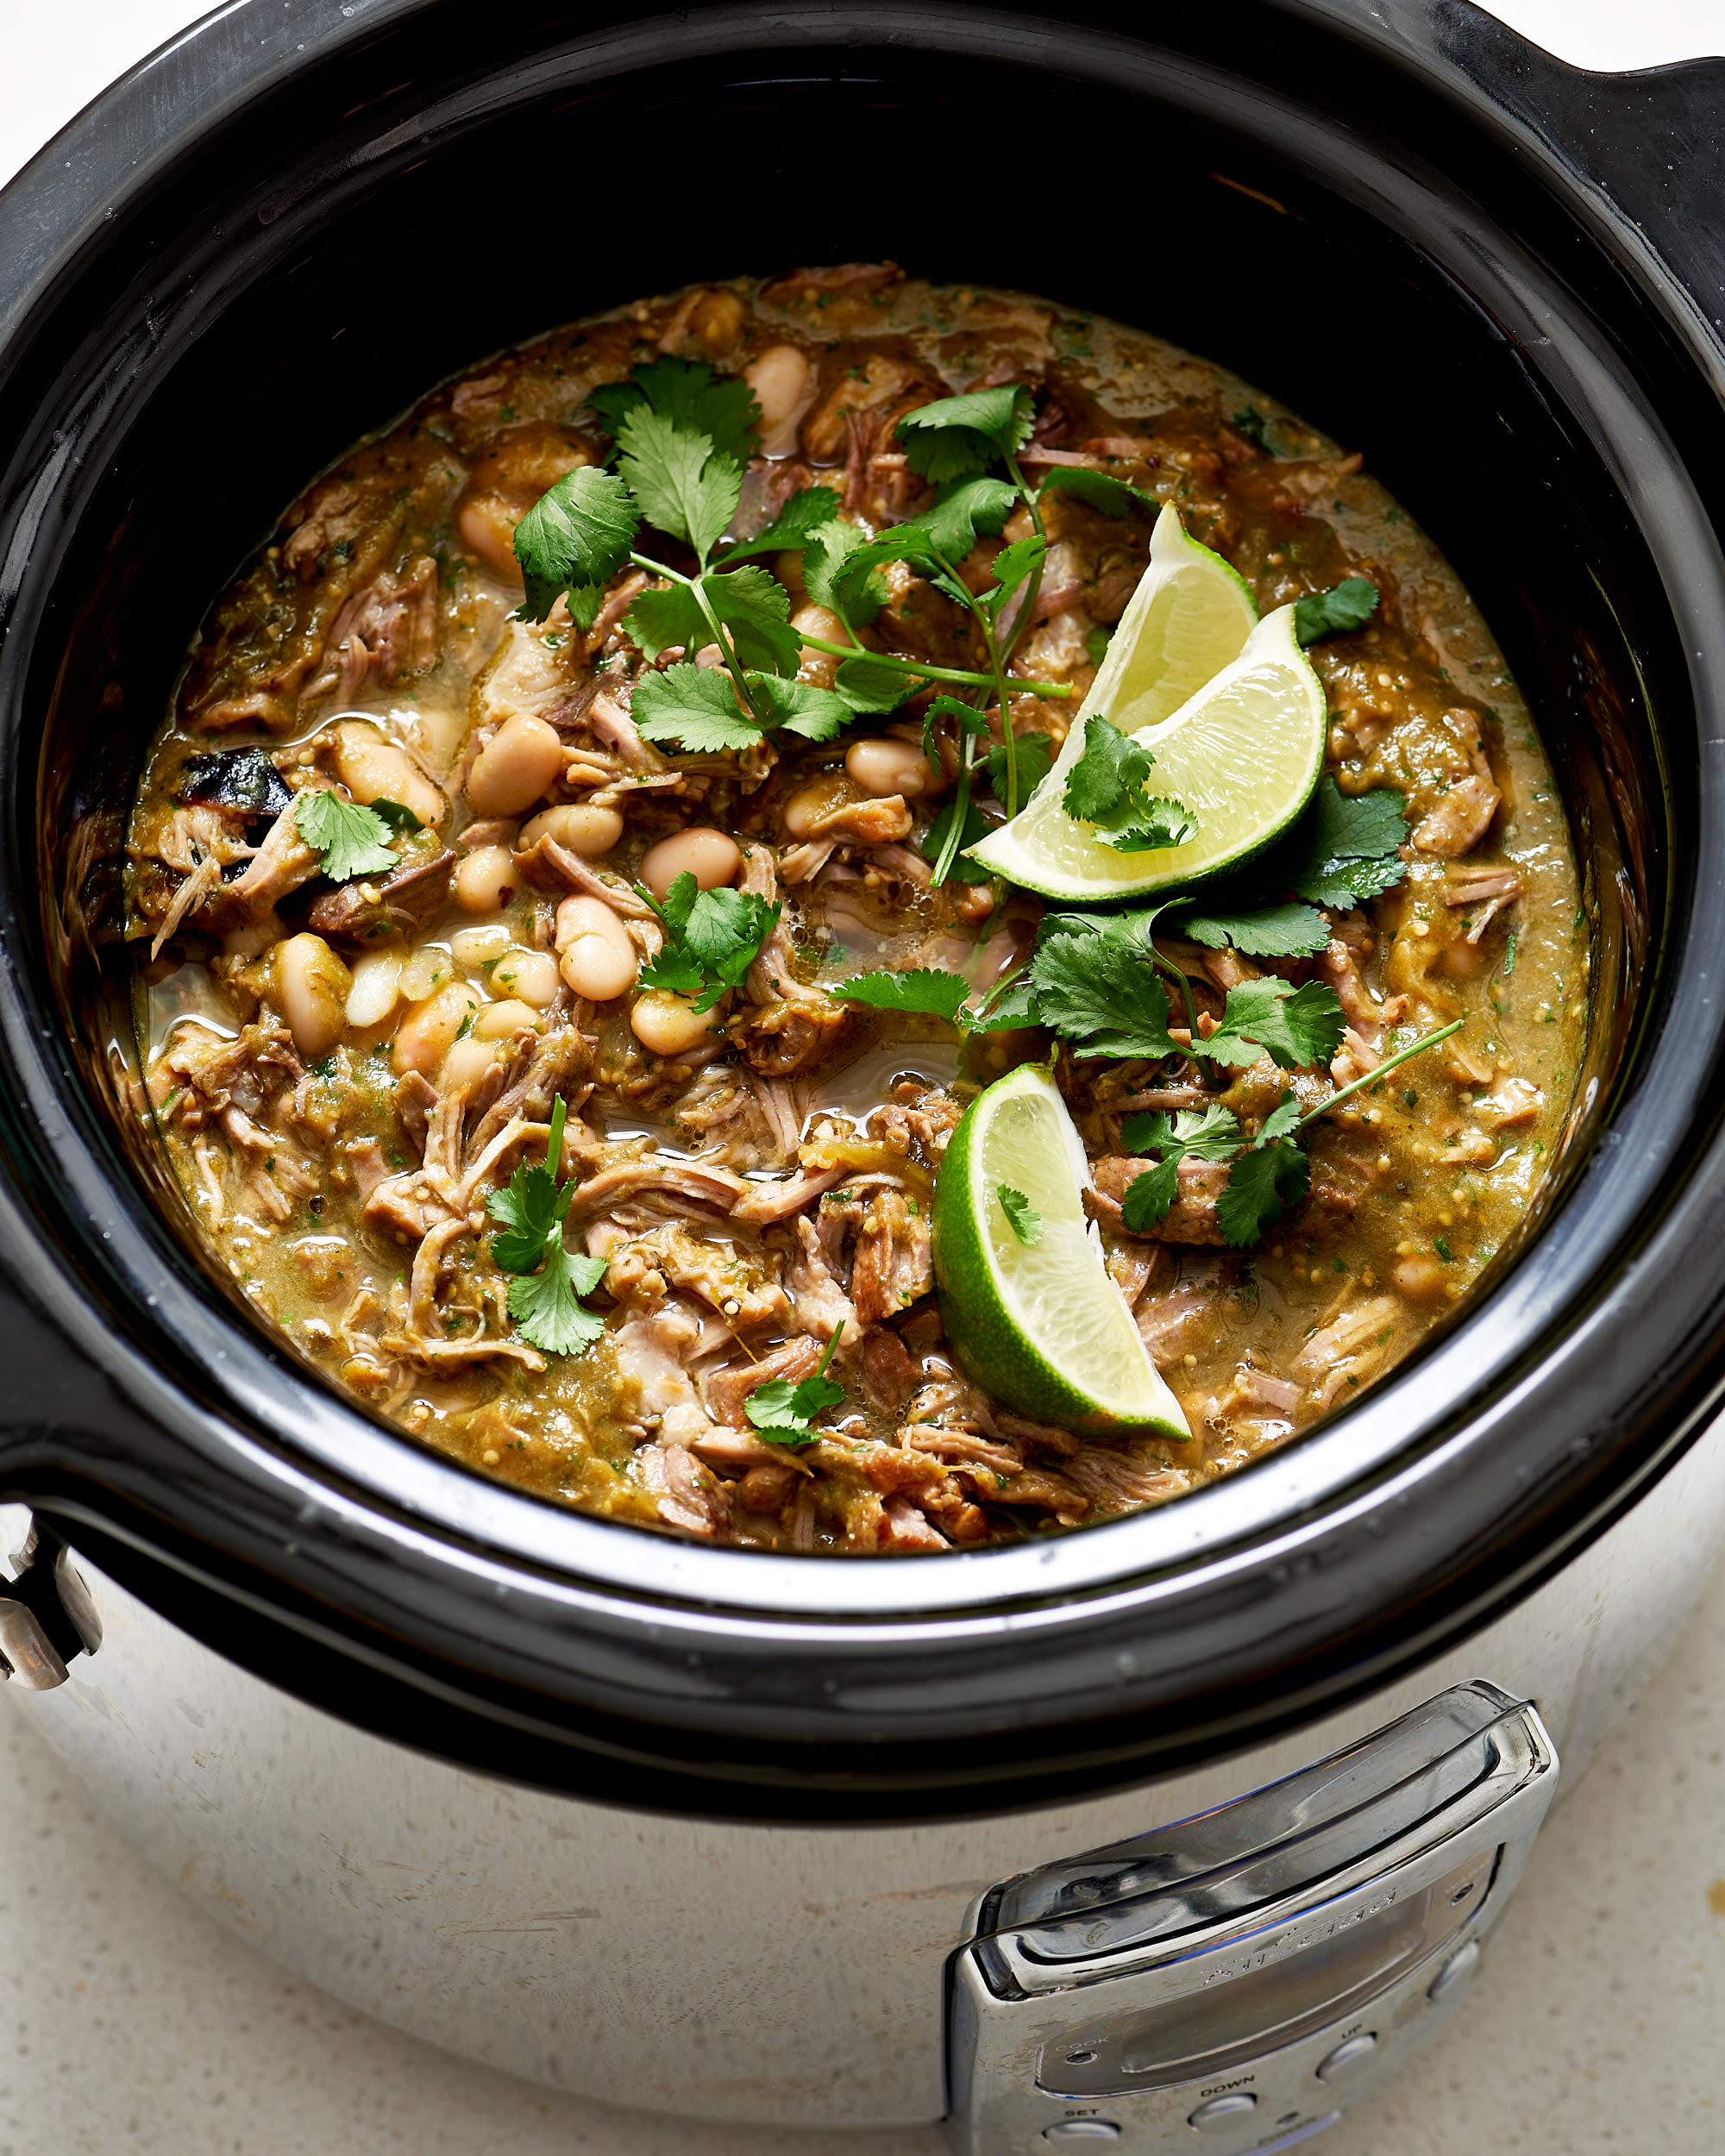 How To Make Slow Cooker Chili Verde